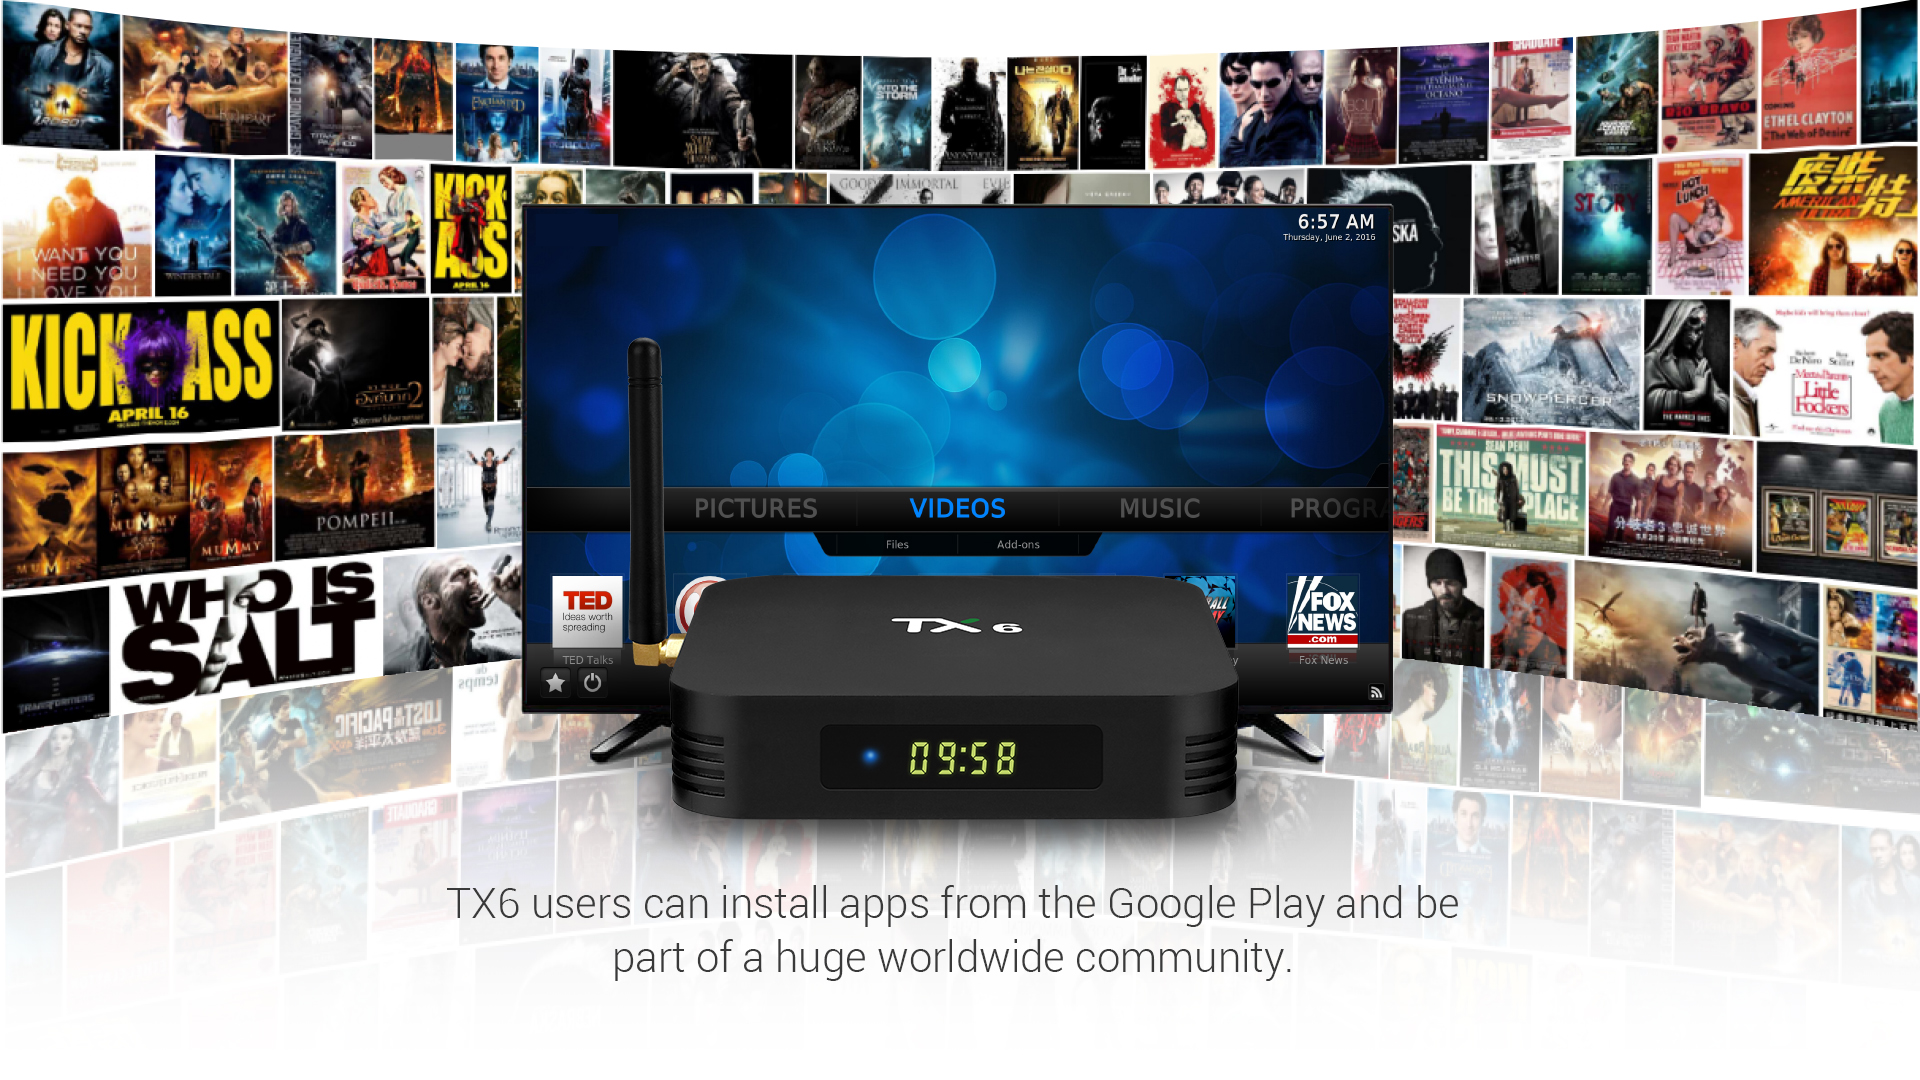 Tanix TX6 Allwinner H6 4GB RAM 32GB ROM 5G WIFI bluetooth 4.1 4K USB3.0 Android TV Box